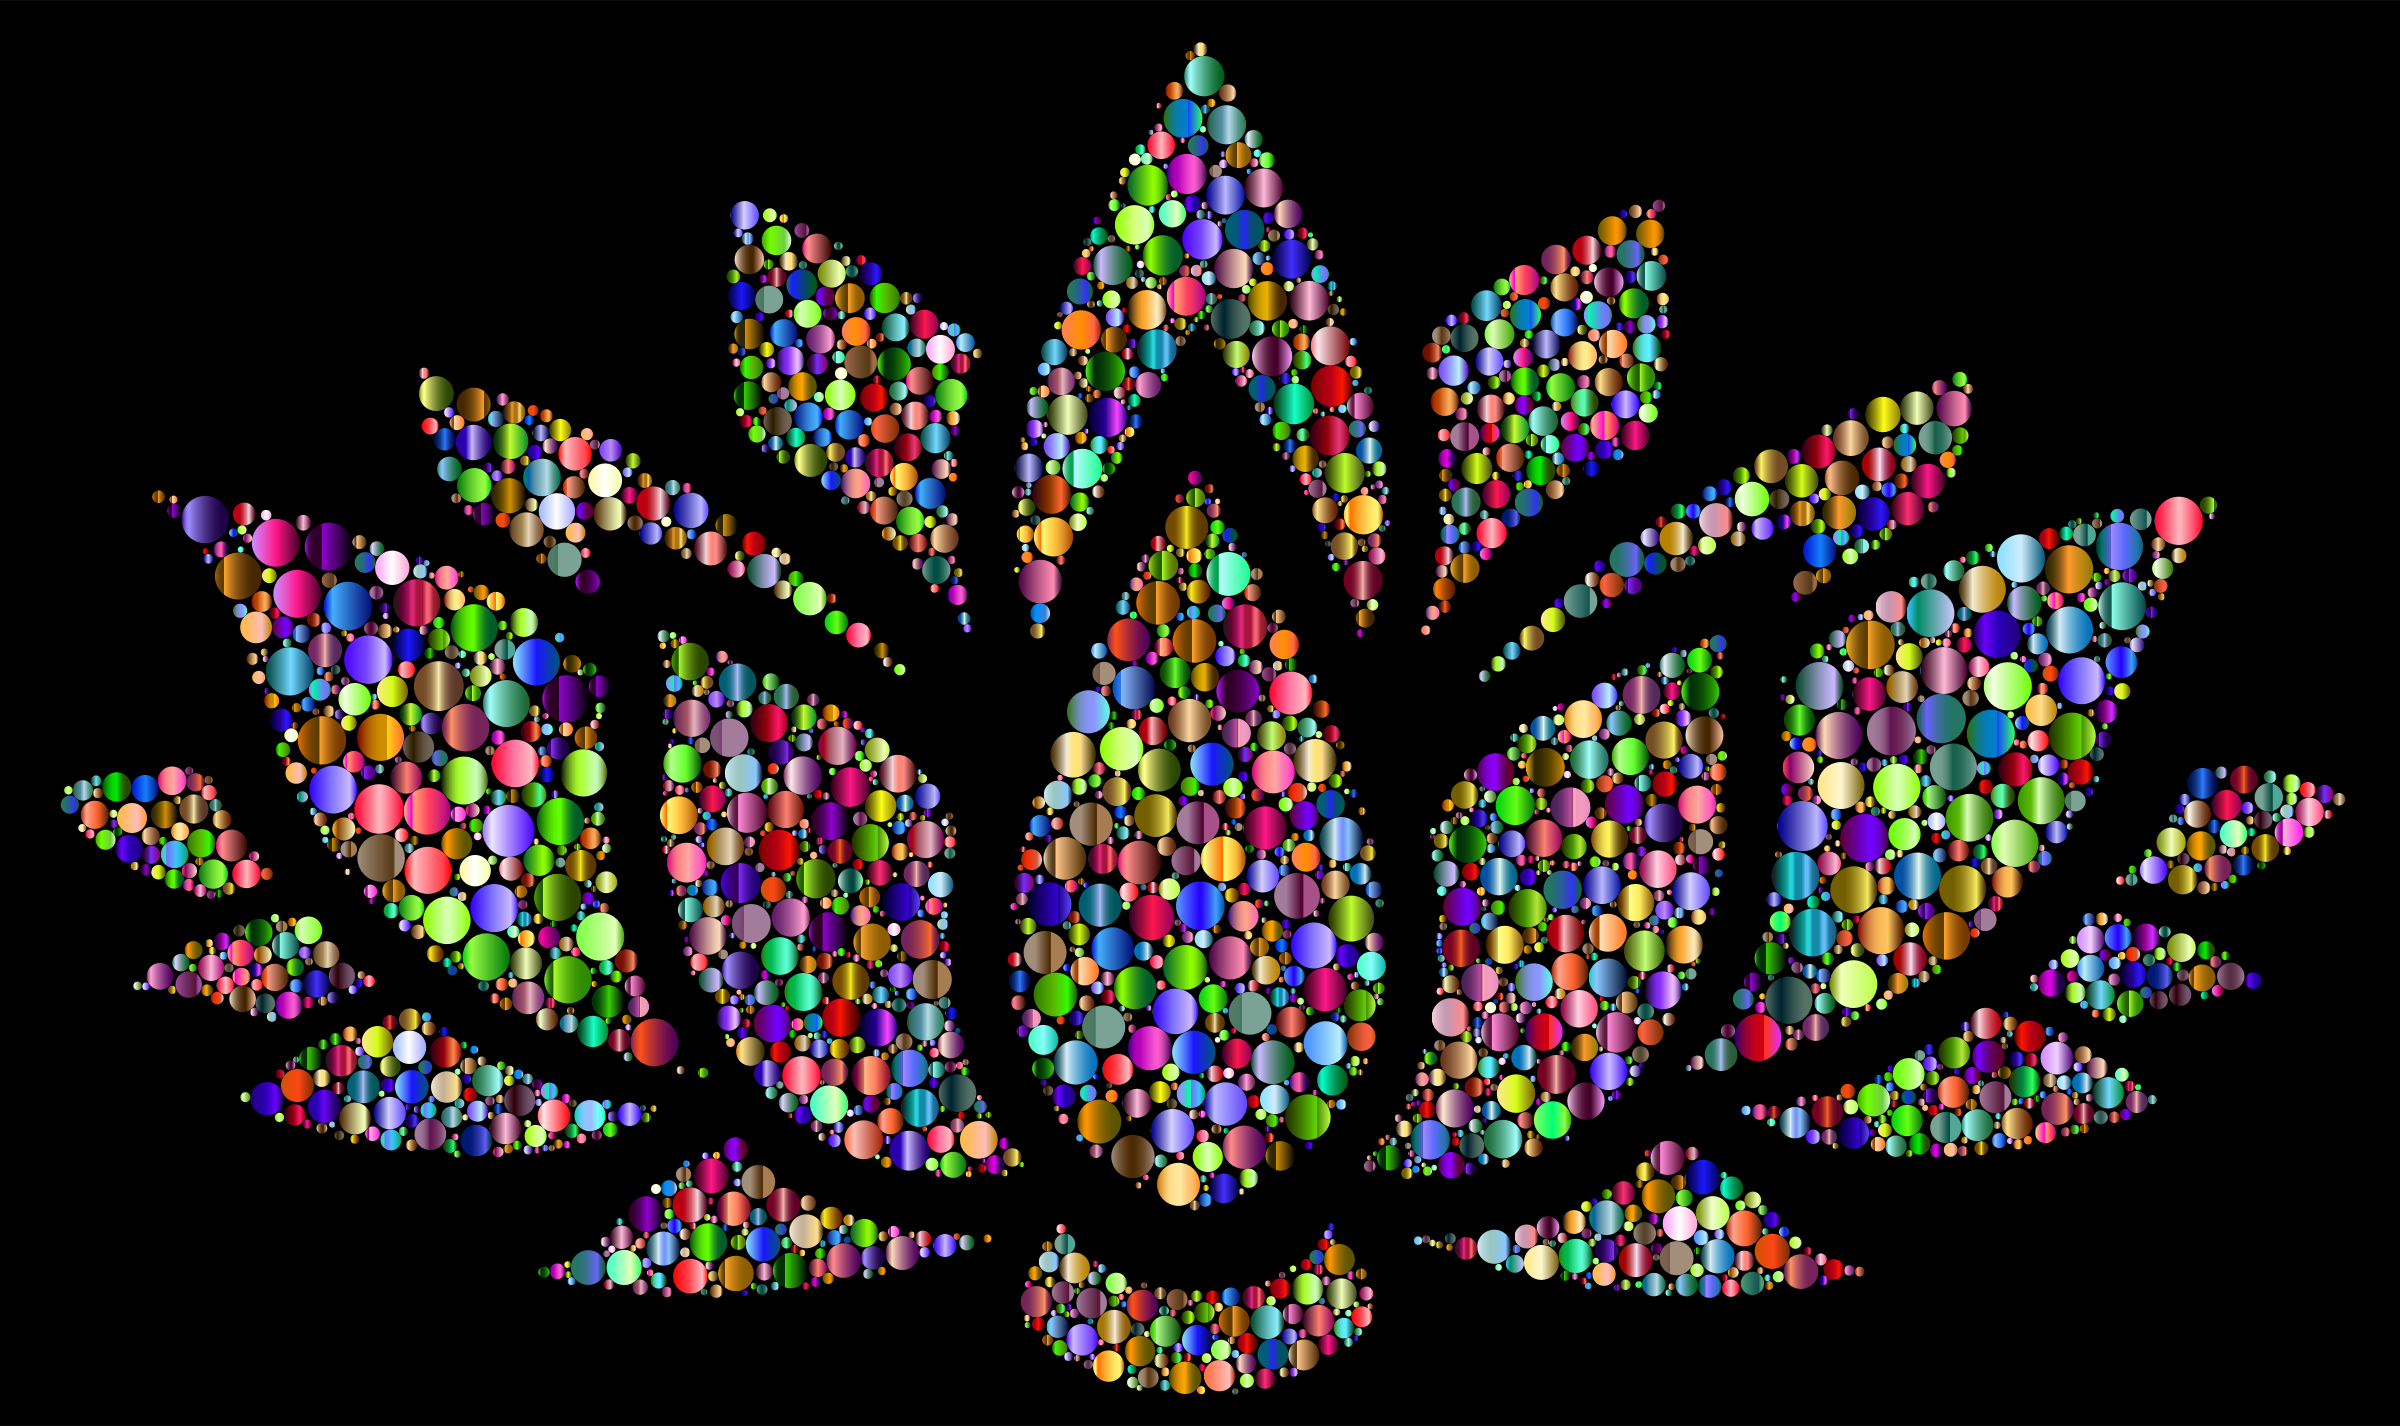 Clipart Prismatic Lotus Flower Silhouette 6 Circles 6